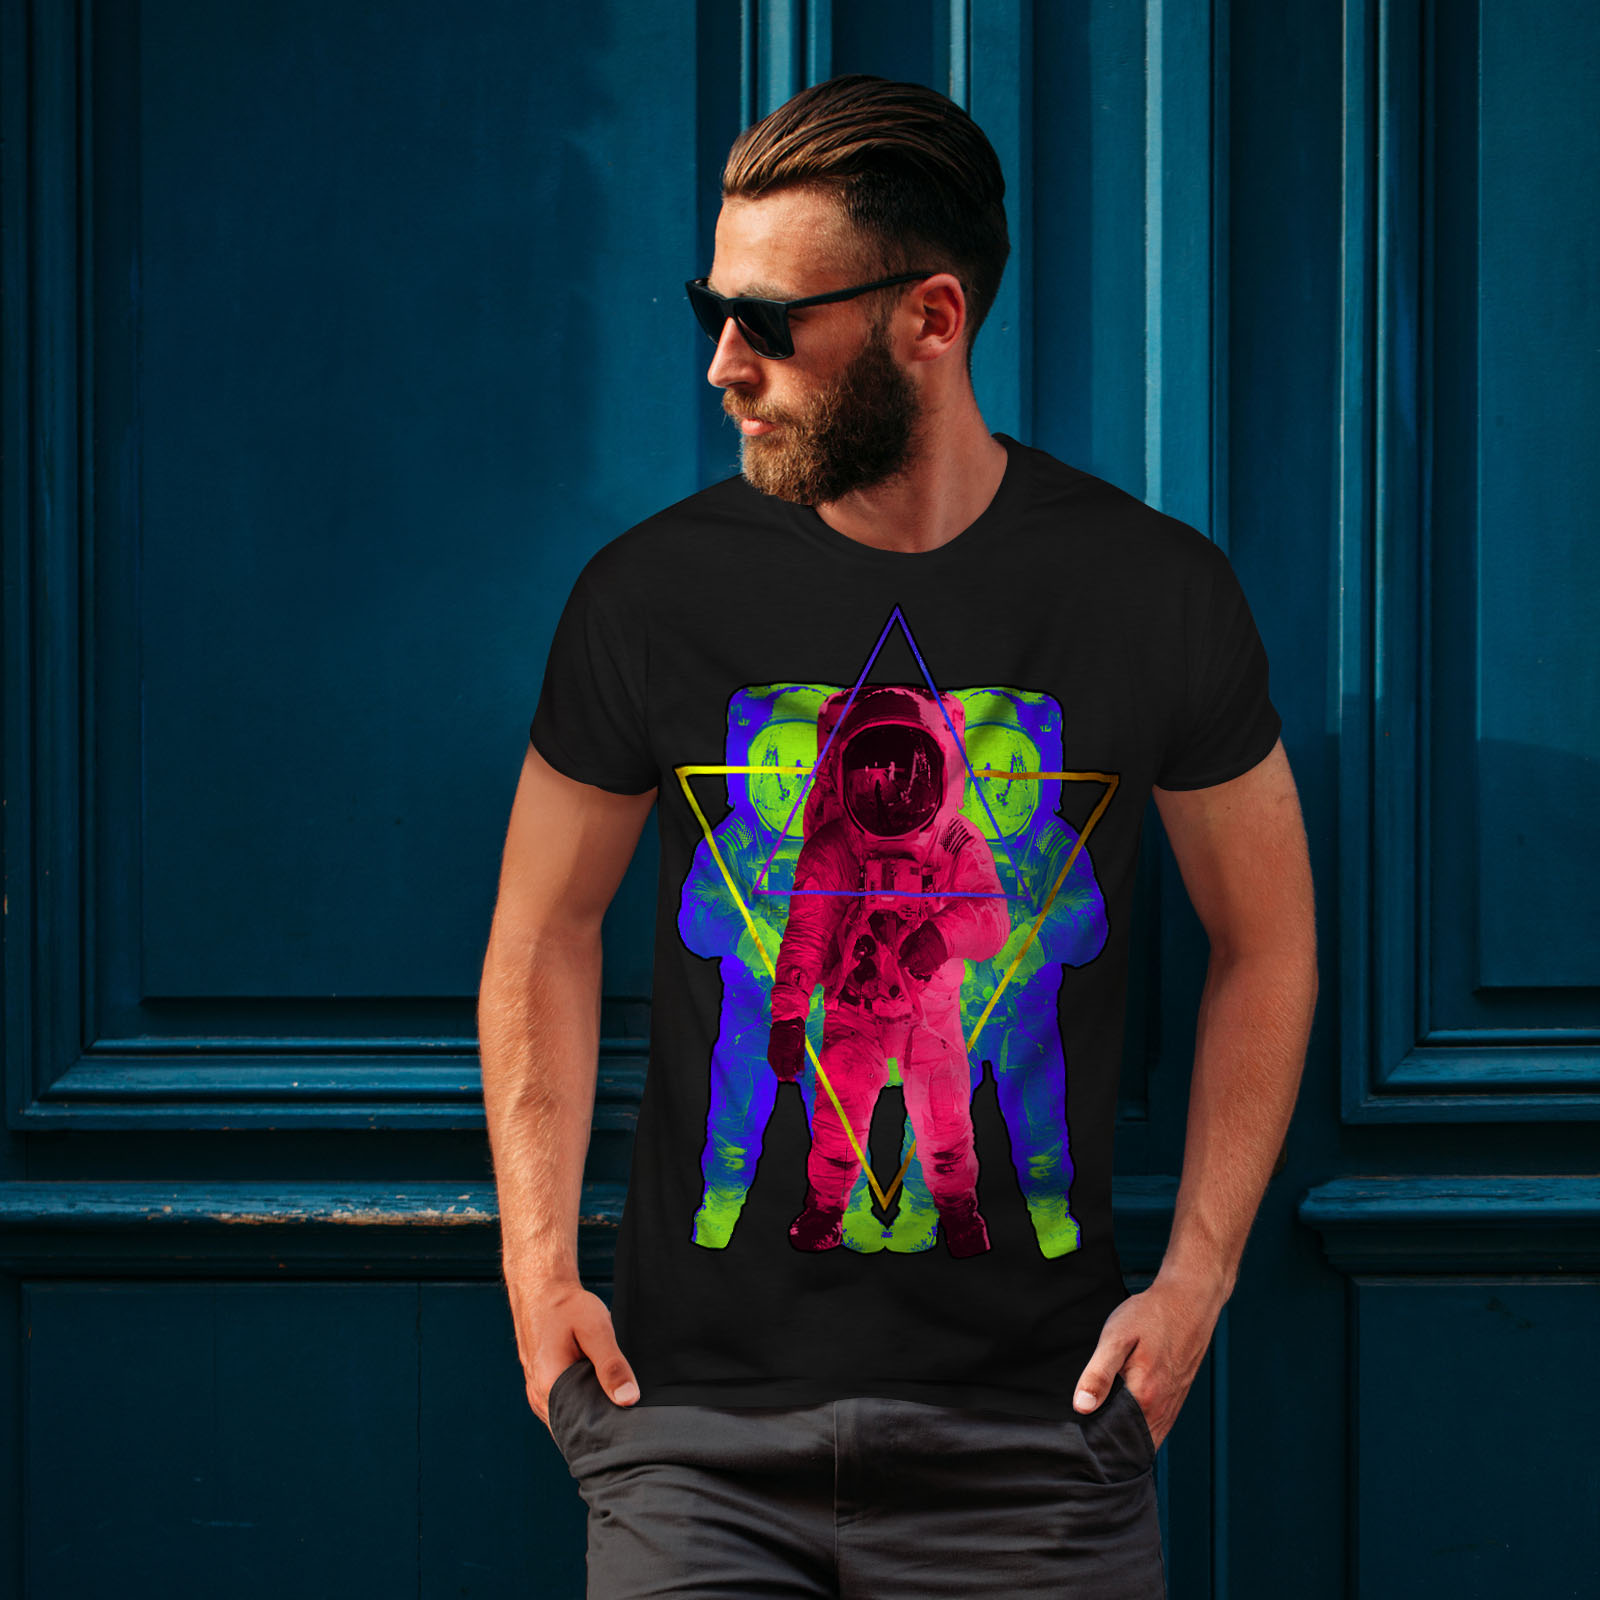 Wellcoda-Psychedelic-Astronaut-Mens-T-shirt-Star-Graphic-Design-Printed-Tee thumbnail 4